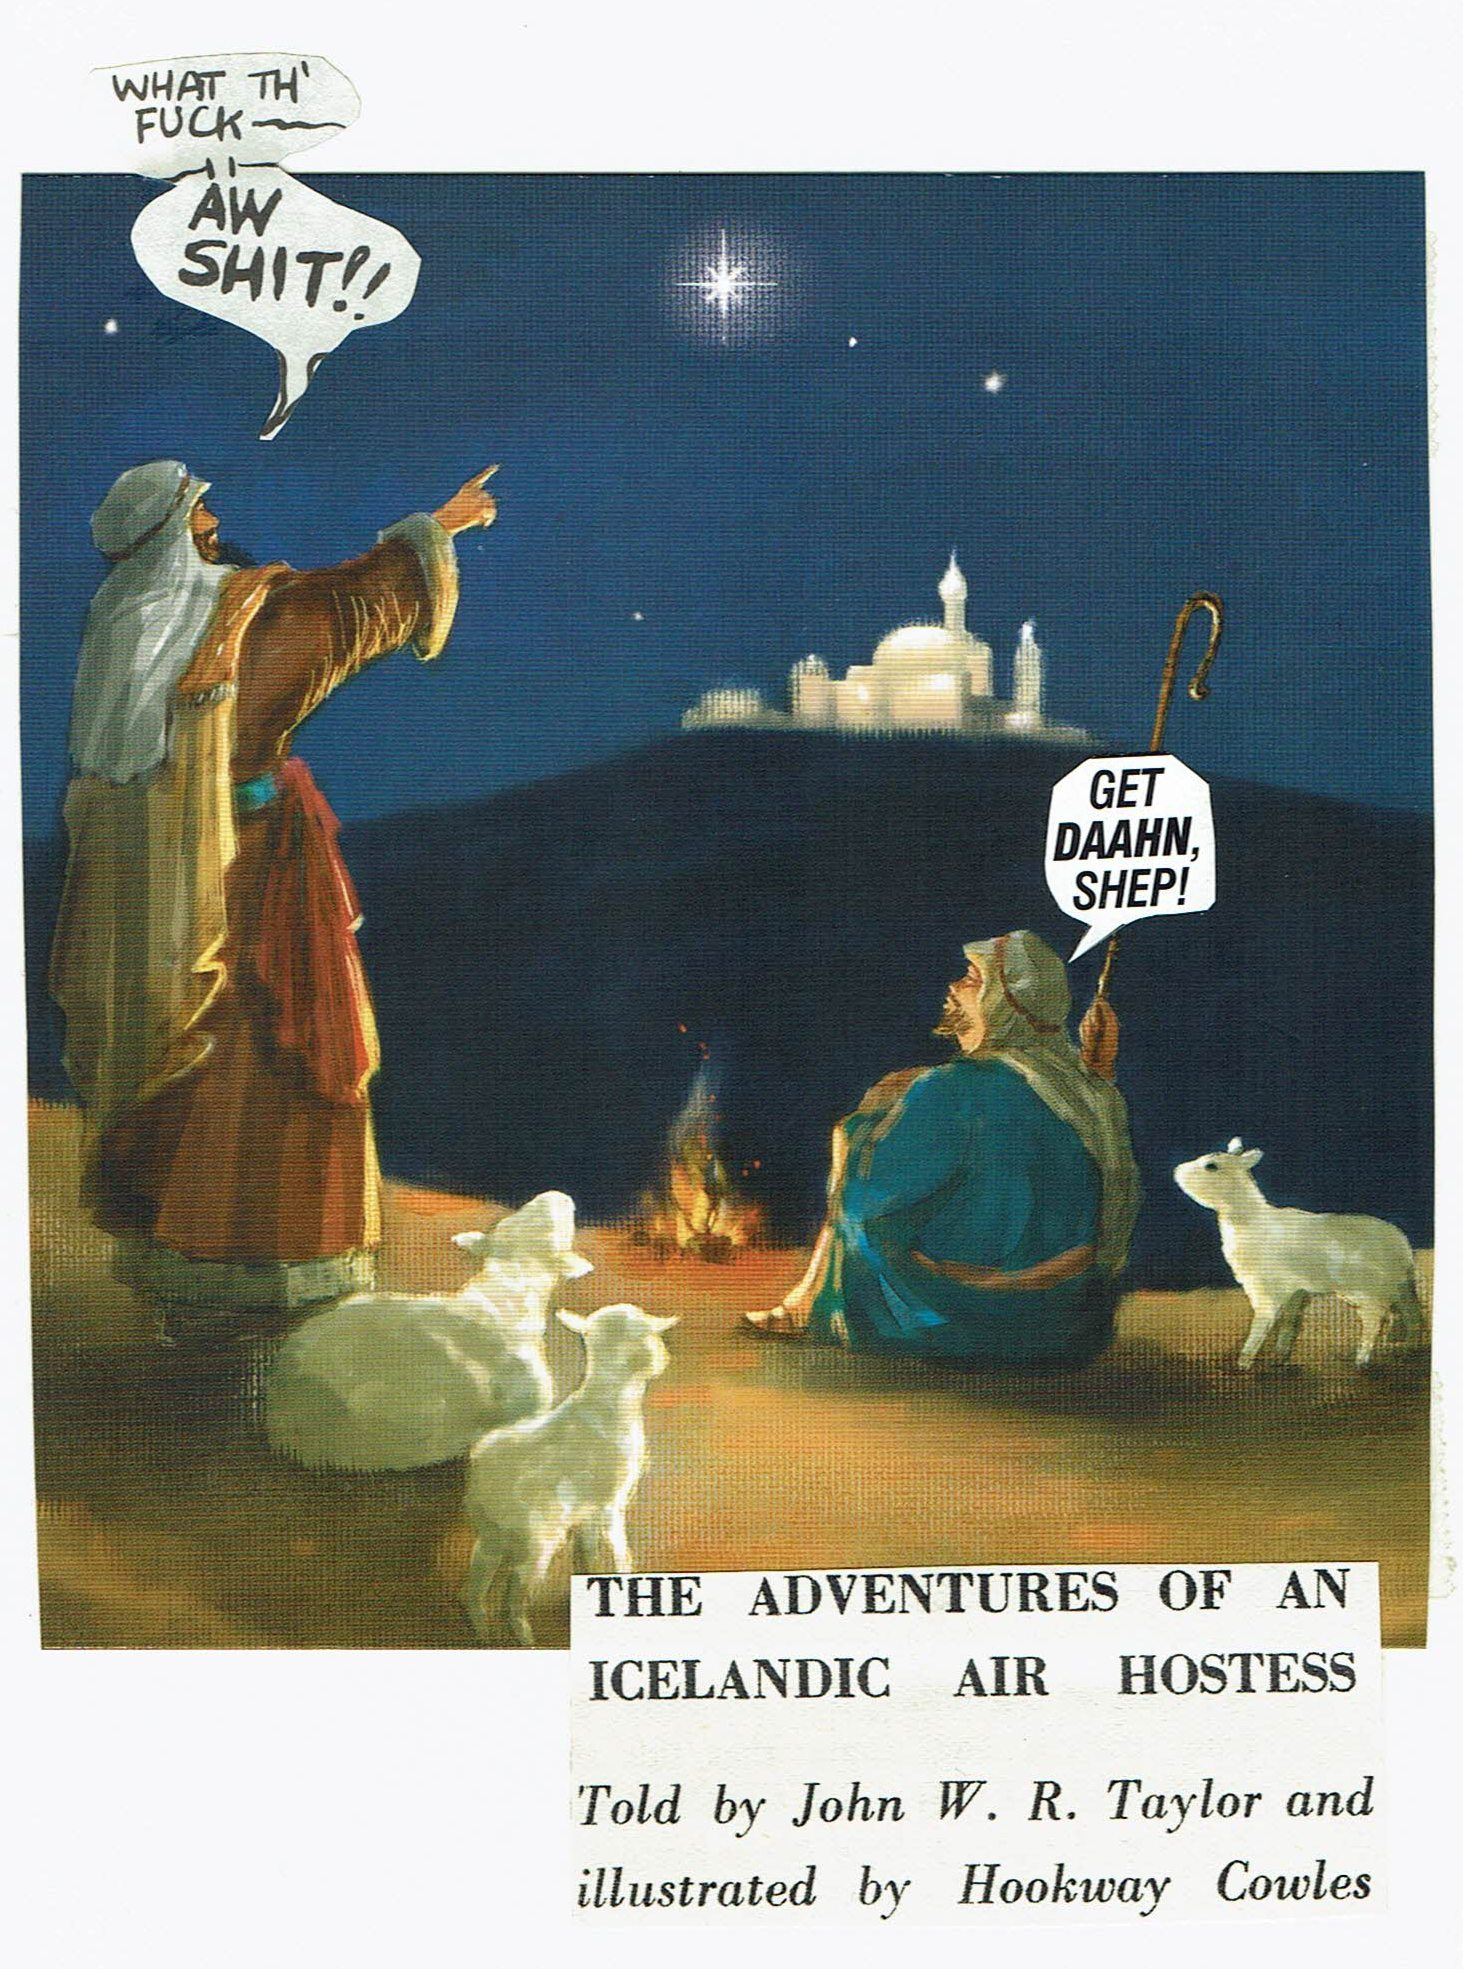 Drone Strike on Bethlehem